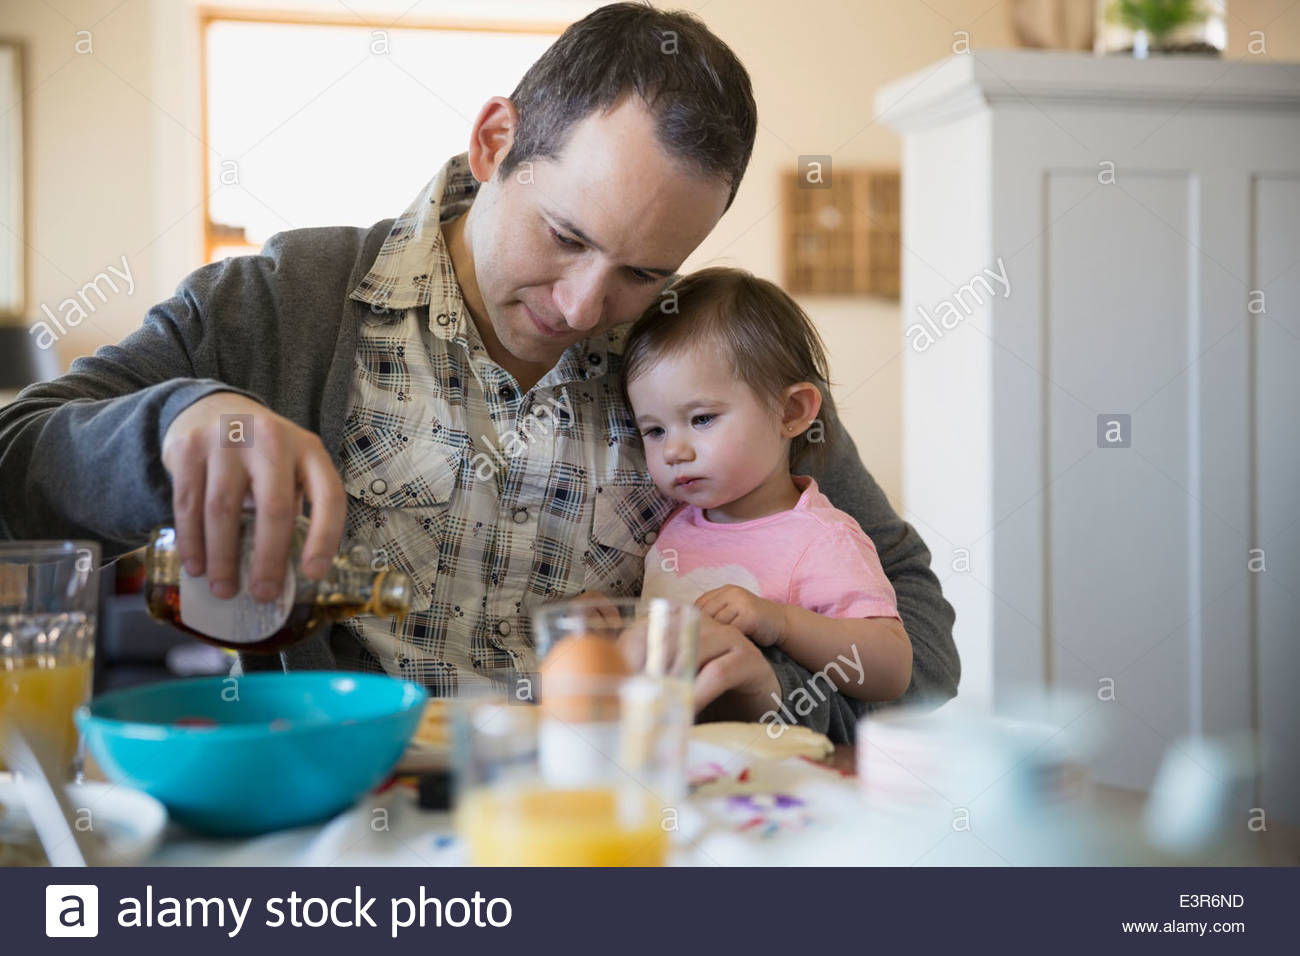 Father and baby daughter enjoying breakfast at table - Stock Image